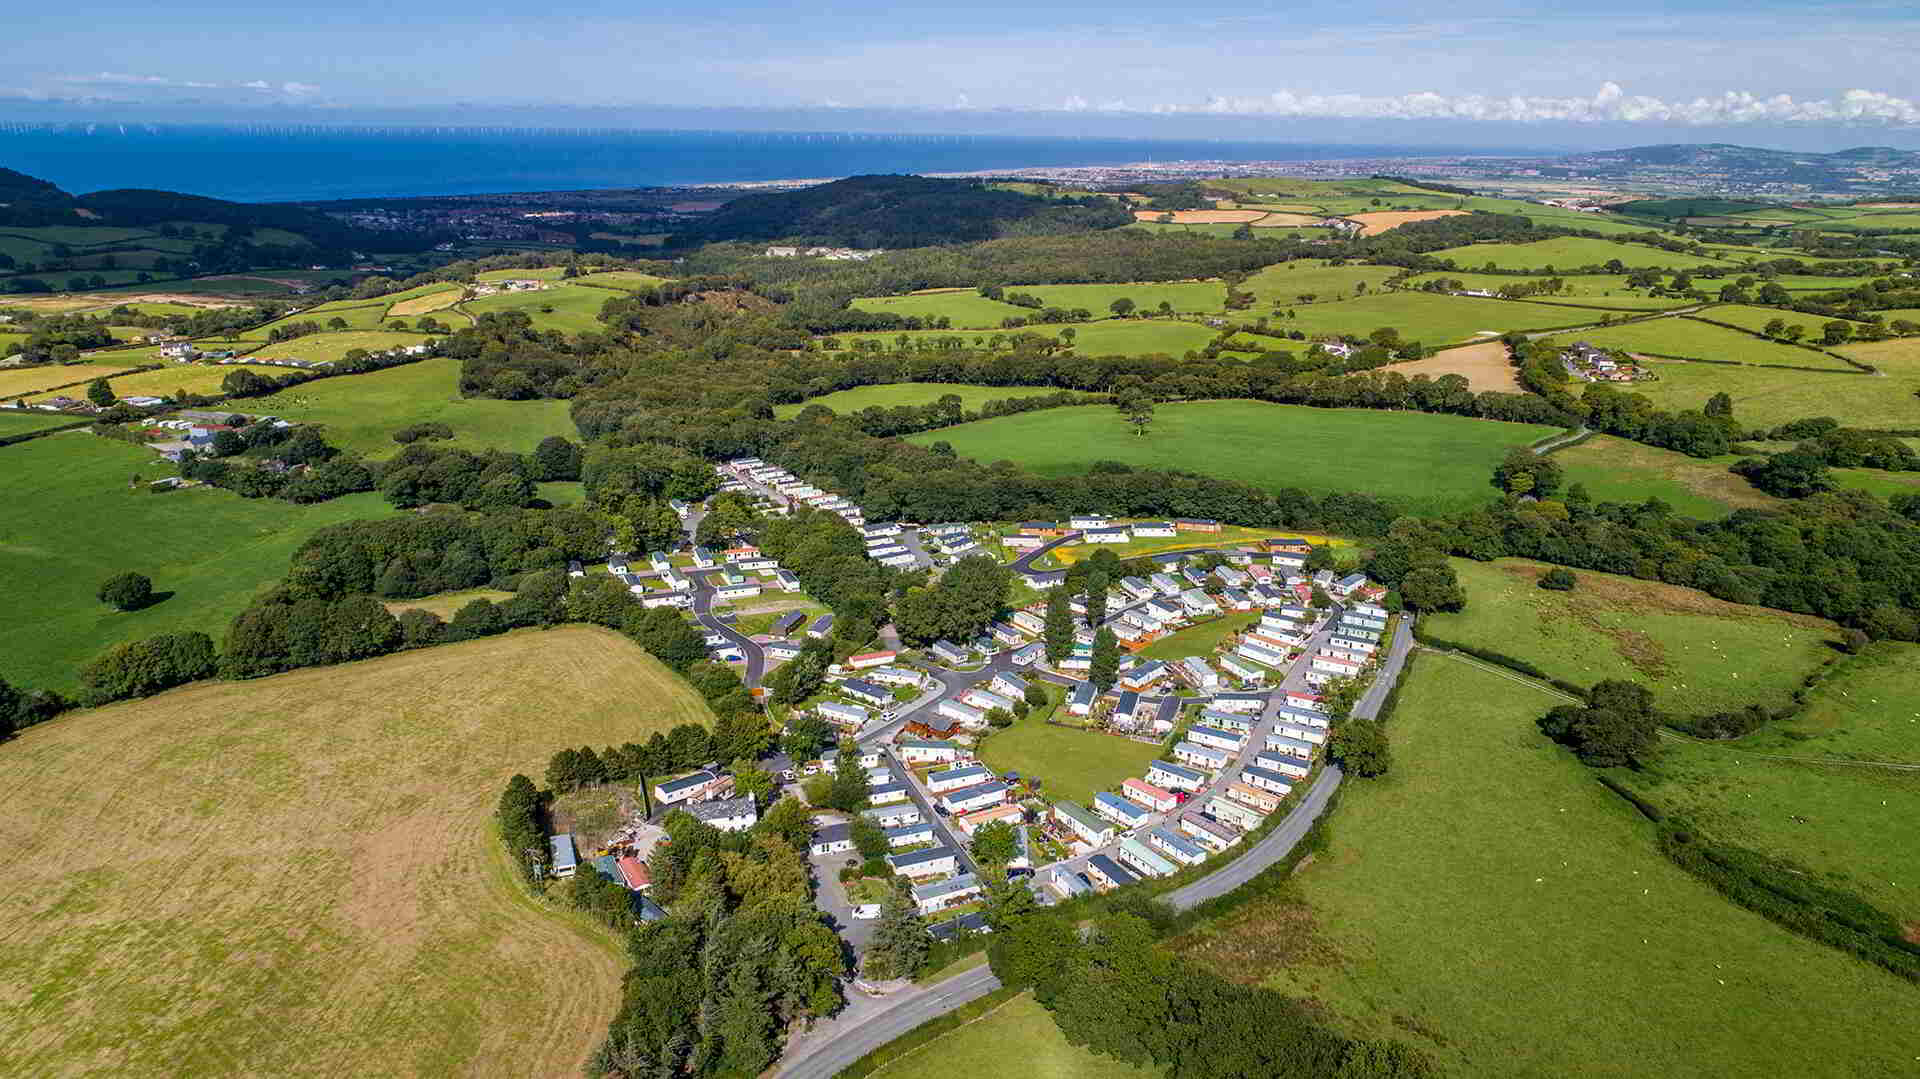 20 Month Static Caravan Sites in North Wales [The Benefits]